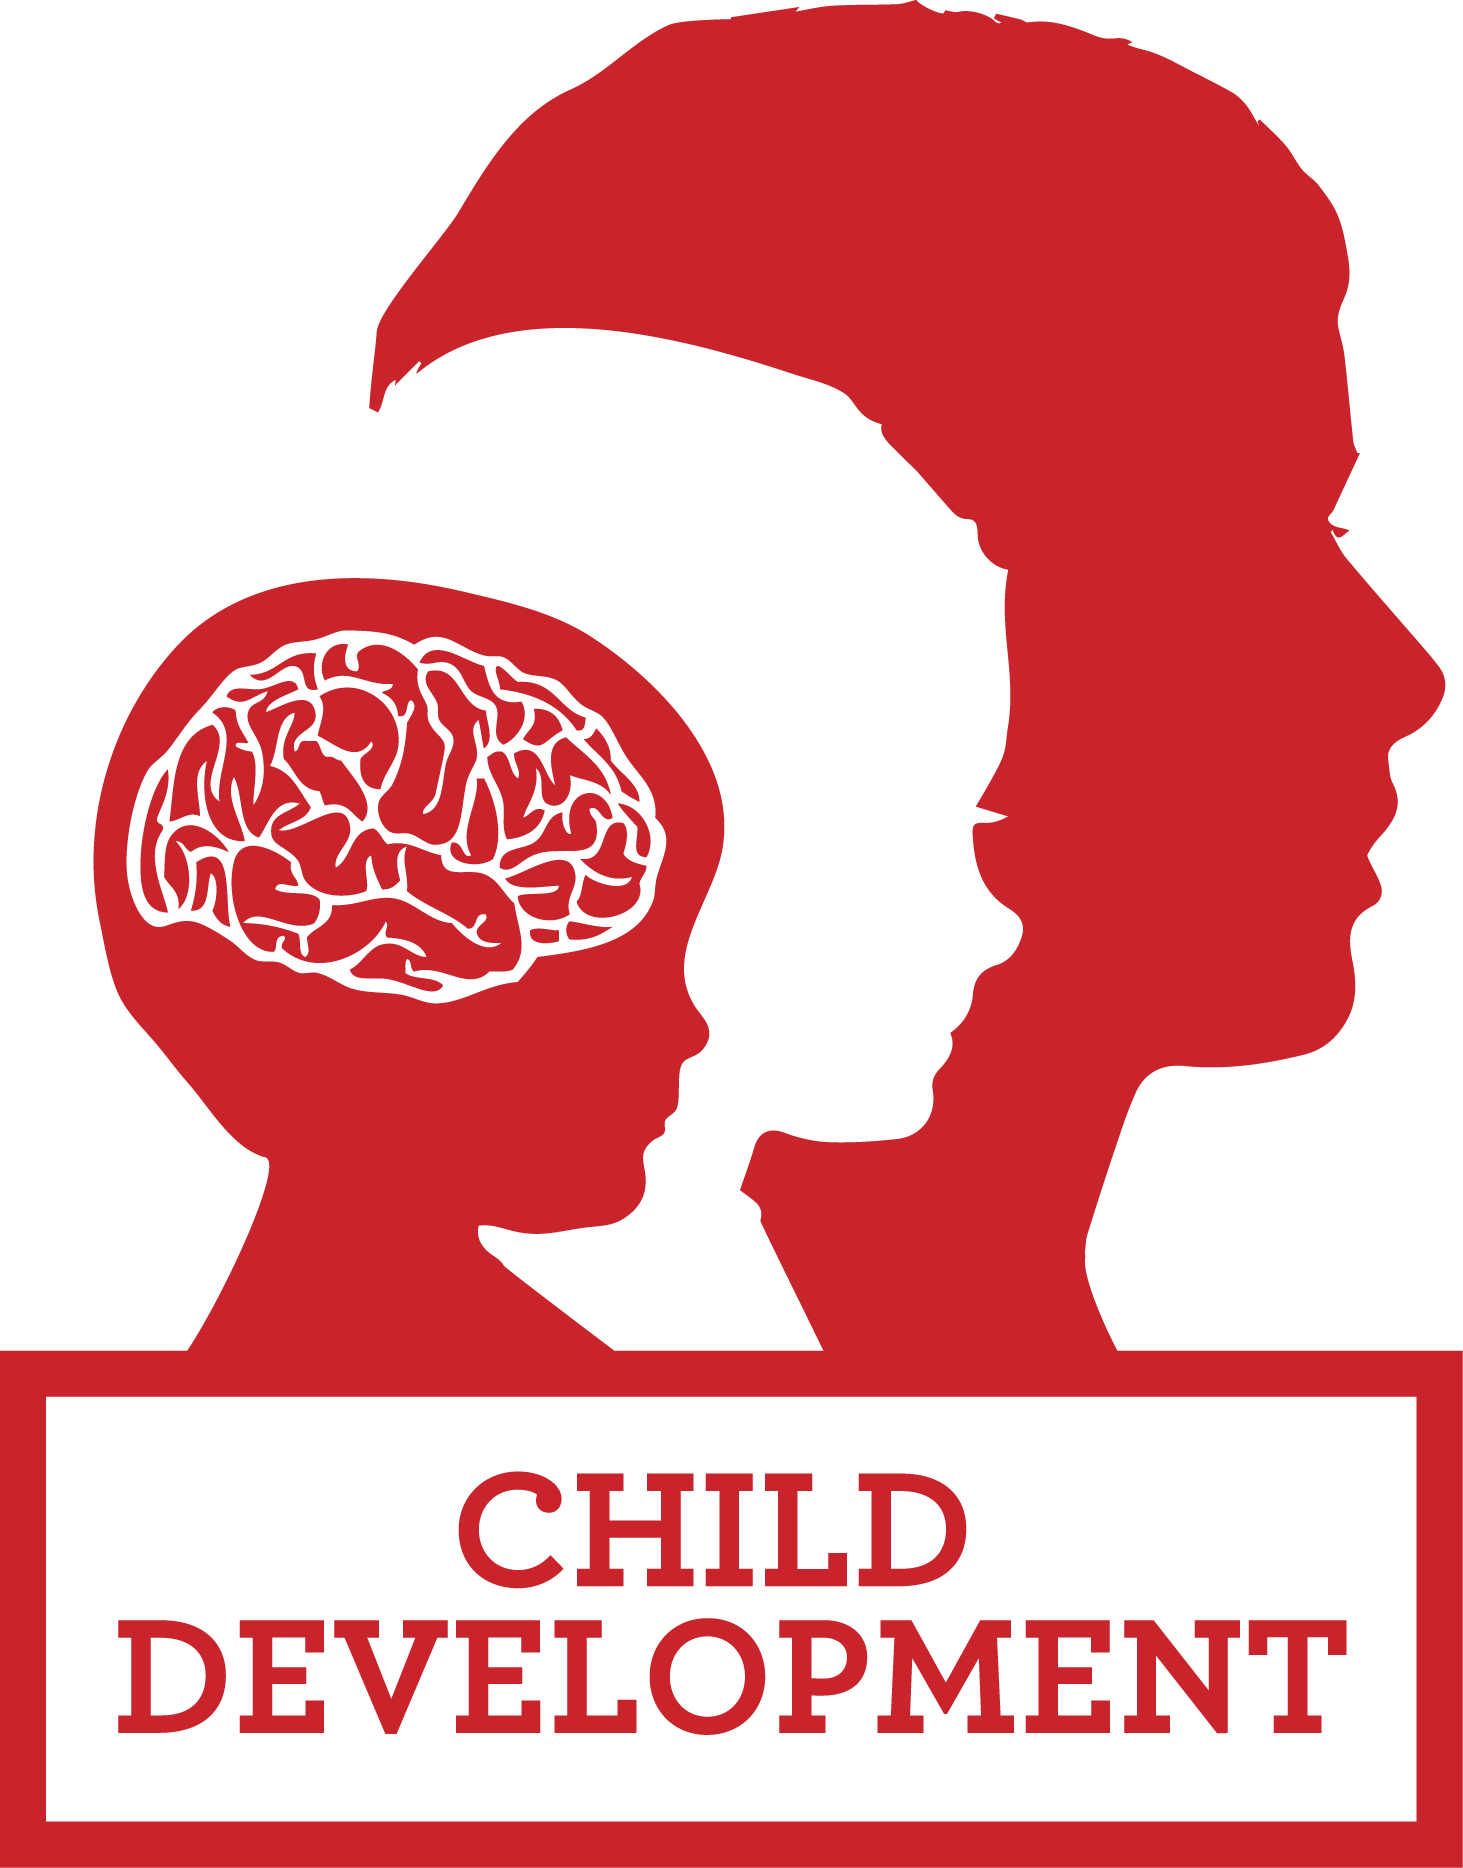 Child development png. Transparent images beginnings this